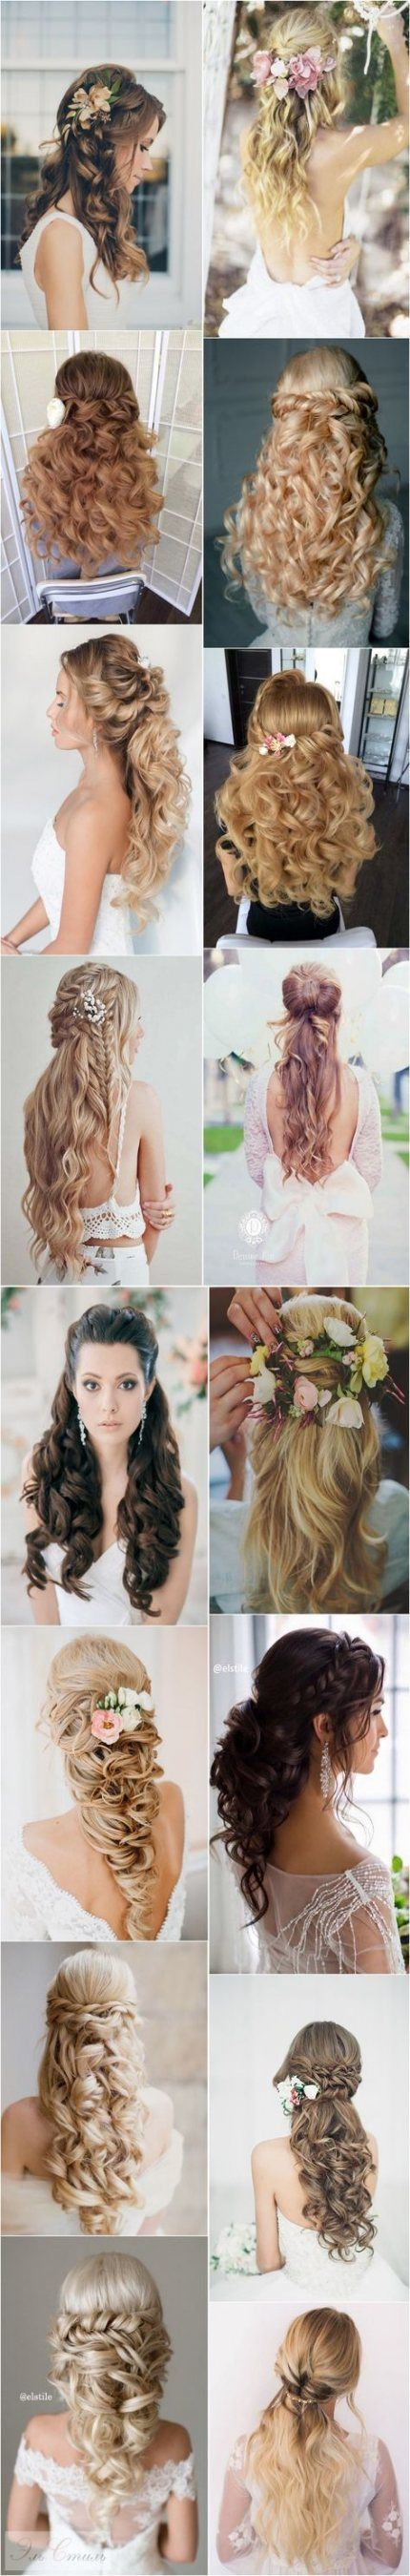 Hair Kinds Half Up Half Down Tutorial Wedding ceremony 44 Concepts For 2019